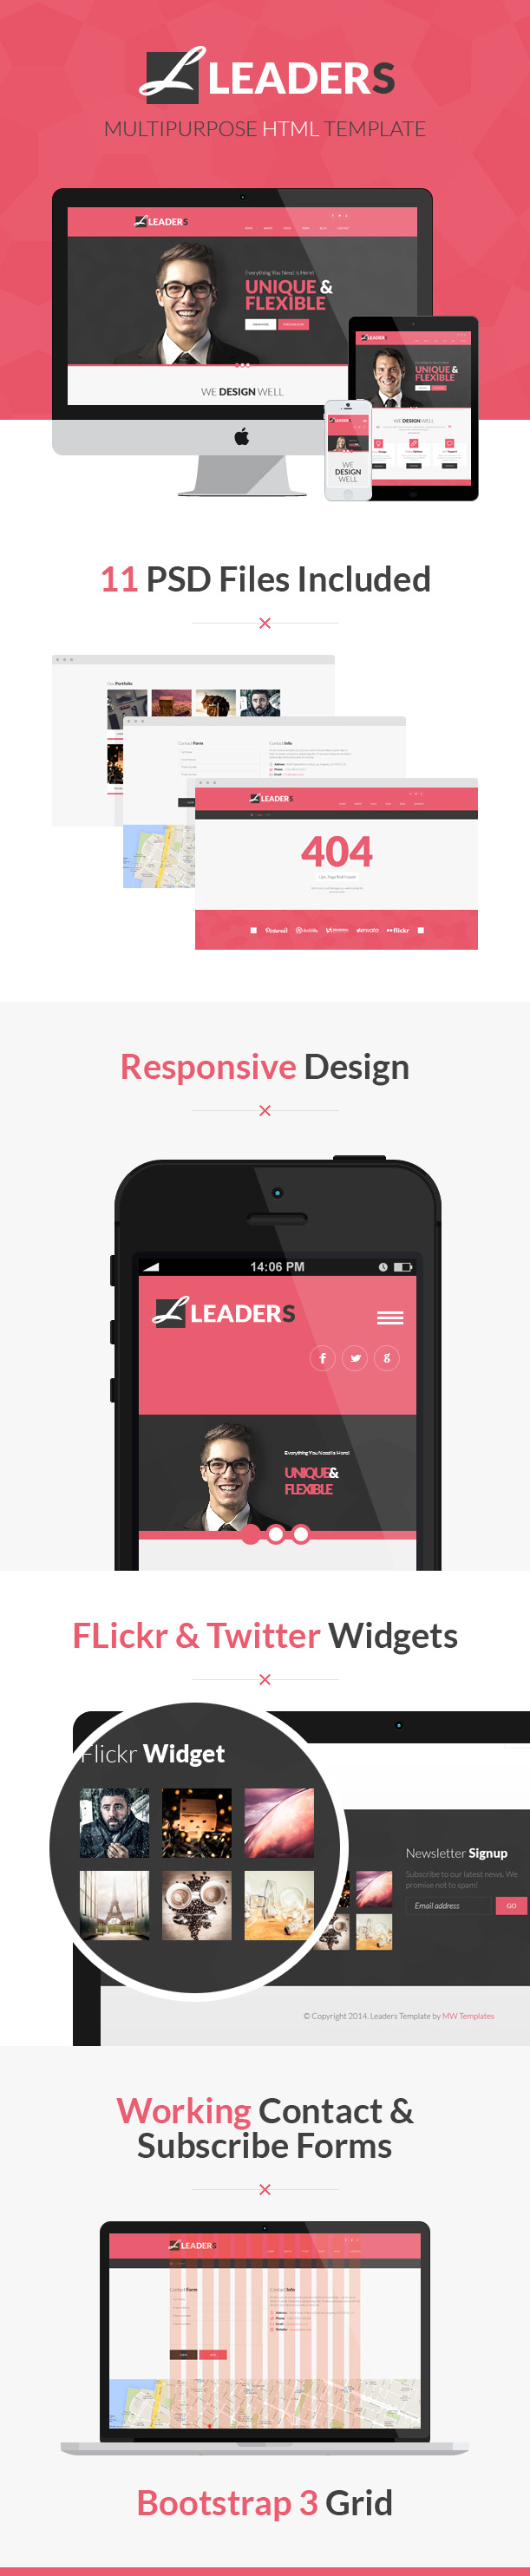 Leaders - bootstrap HTML template